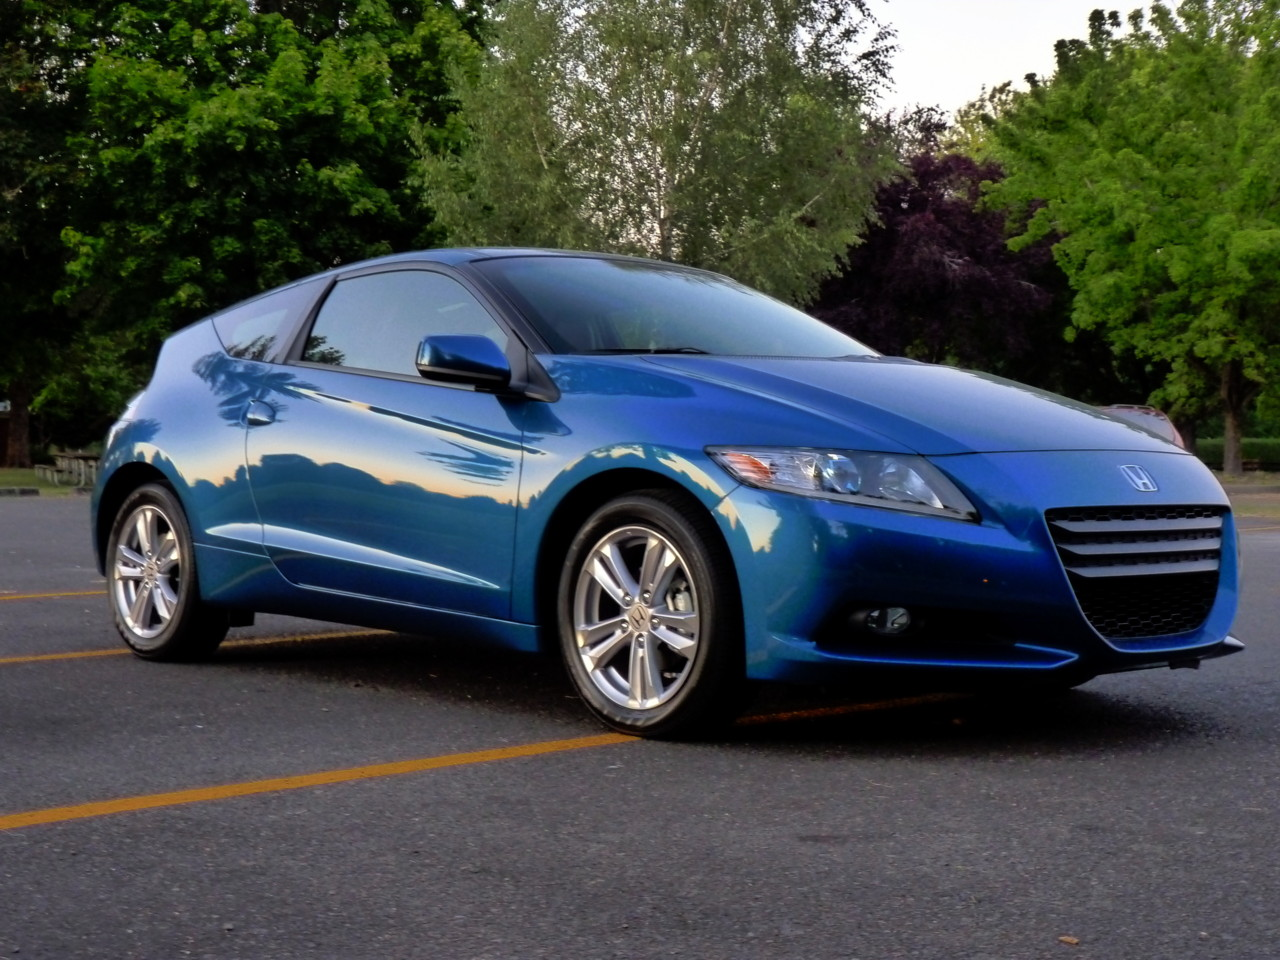 Minivans For Sale >> 2011 Honda CR-Z: Three Test Drives, Three Editors' Opinions, Five Questions